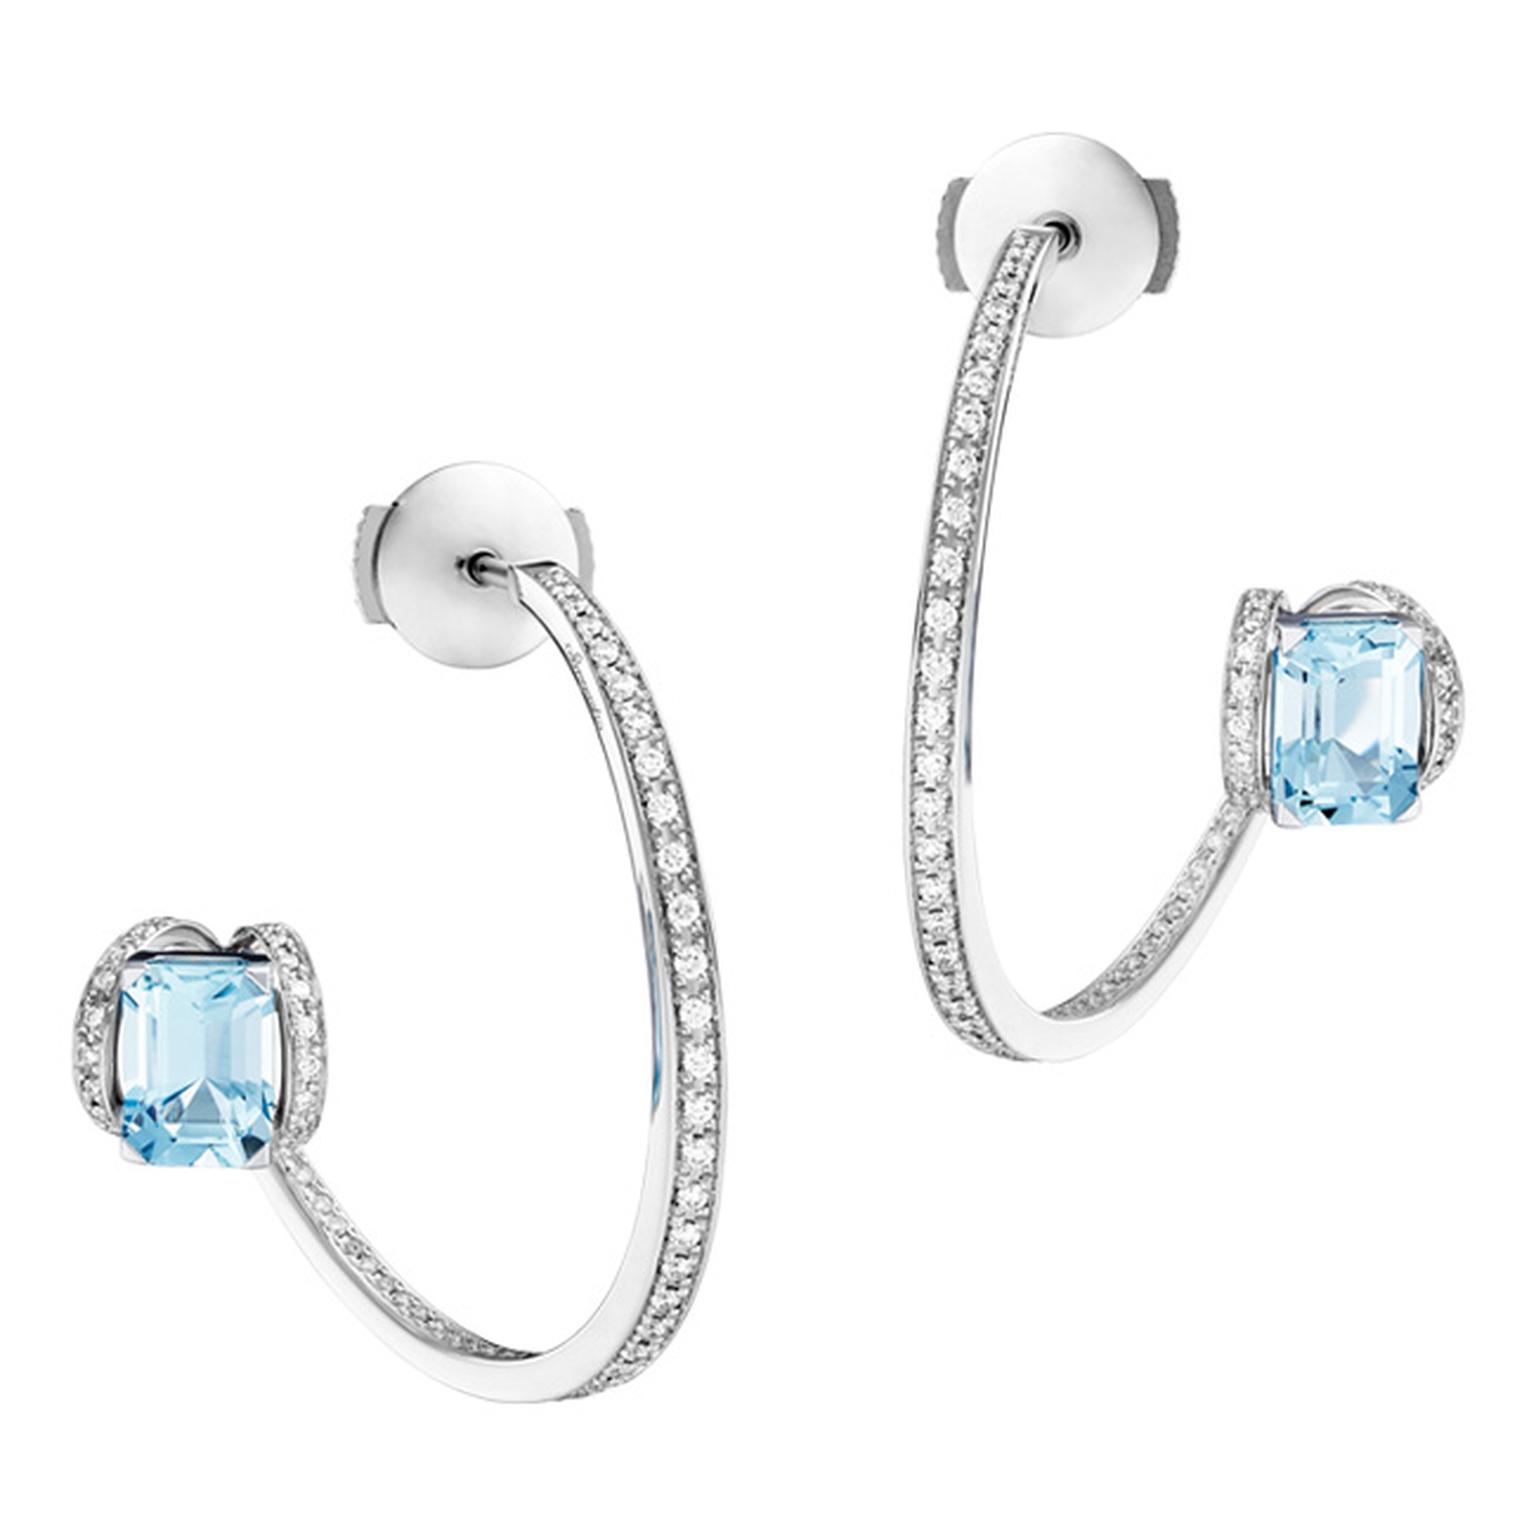 Breguet Mini Reine de Naples Creole aquamarine earrings_20130801_Main